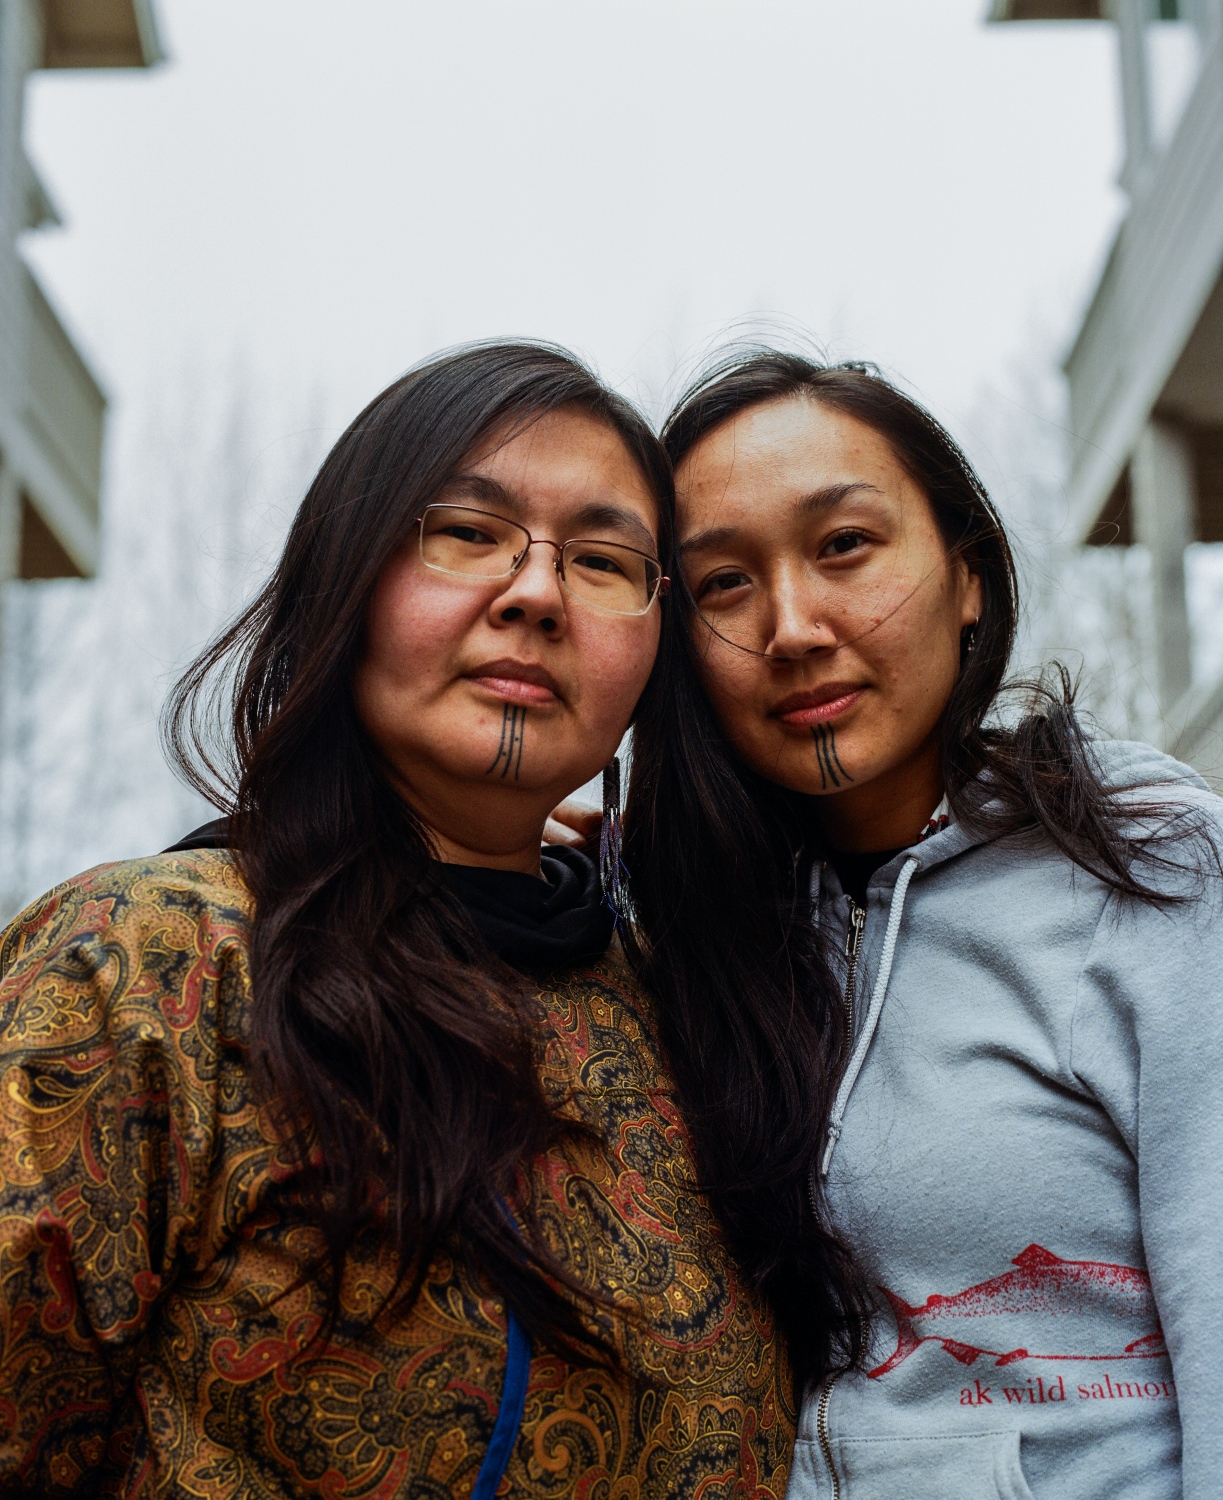 "Mellisa Johnson Heflin, who goes by her Inupiaq name Maktuayaq, 39, and Charlene Aqpik Apok, who goes by her Inupiaq name, Aqpik, 33, outside of Apok's home in Anchorage. The two women were in a master's program together, and say that they would stay up late talking to one another, and on one night, the conversation of traditional tattoos came up.  ""She was like ""for reals? You want one too?"" Apok says. ""And so then we planned on it from there.""  The two women went to get their tattoos together at a tattoo parlor, before women like Nordlum and Whalen-Lunn were reguarly doing the hand poke method in town. Both women teach Inupiaq in addition to holding positions at demanding full-time jobs (Heflin is the Executive Director at and Bering Sea Elders Group and Apok is a Researcher at Southcentral Foundation), and for each there is a strong connection to getting the tavlagun and to speaking their indigenous language.  ""There's so much to it,"" Apok says. ""With our creation stories, ceremony, rites of passage, gendered ceremonies, the sisterhood—the sisterhood of this—has been almost indescribable. Our language journey together. The placement of this by my mouth—that is something I would speak to as well in saying that our words are so powerful, and what comes out of our mouths is so powerful—it was a reminder for me to speak my truth, and to not be afraid to speak my truth, and that it's valid. And also to be mindful to not say anything I would want to take back. It holds you highly accountable for what you speak into existence."""